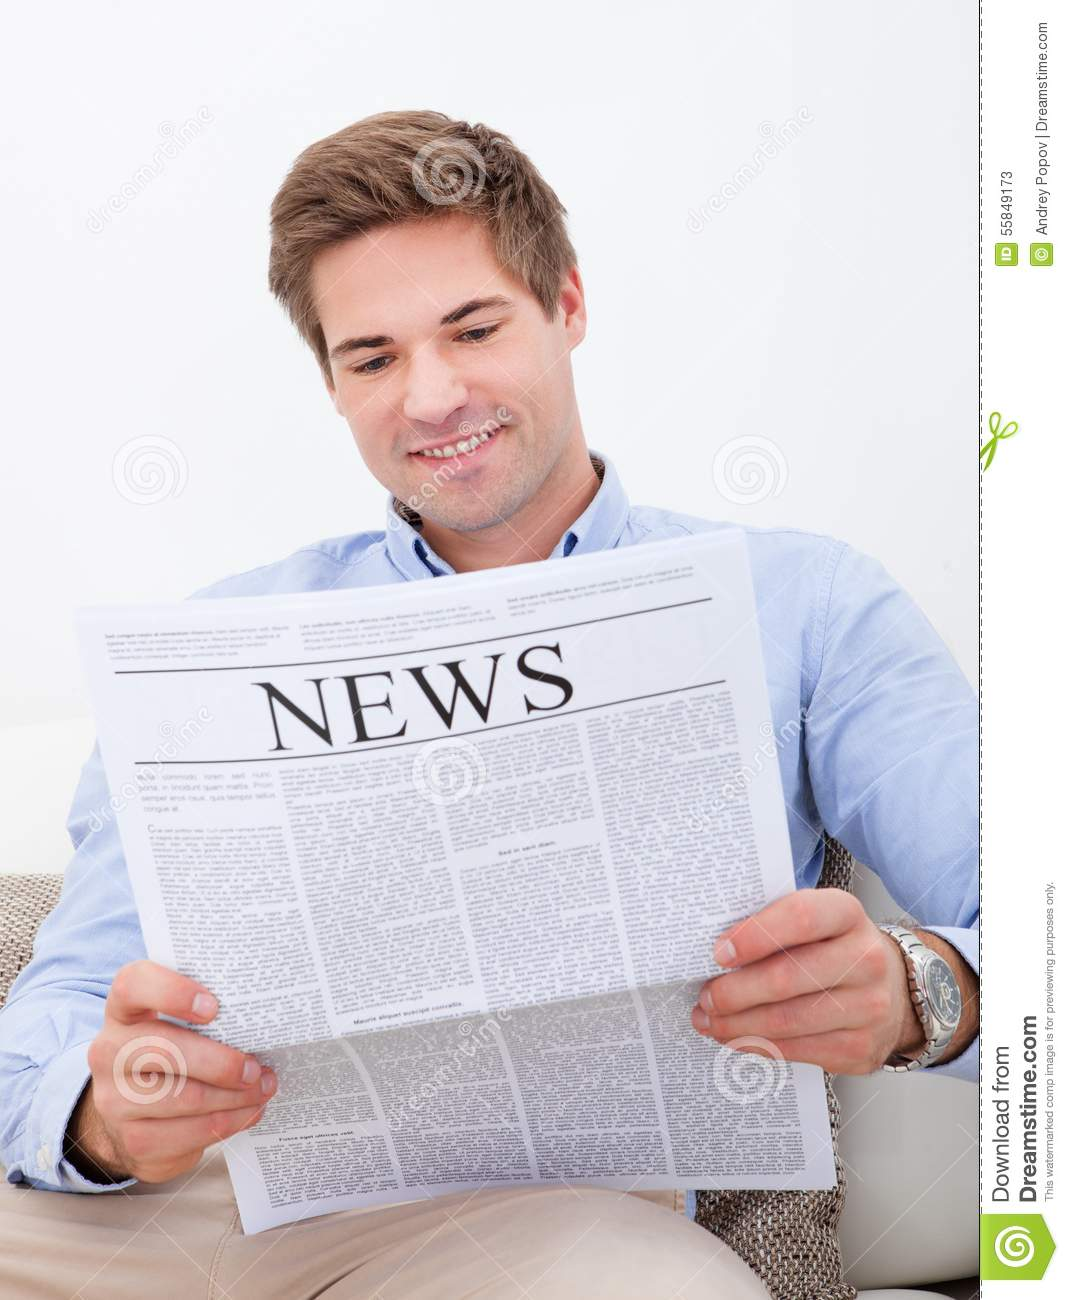 Man Reading Newspaper Stock Photo - Image: 55849173